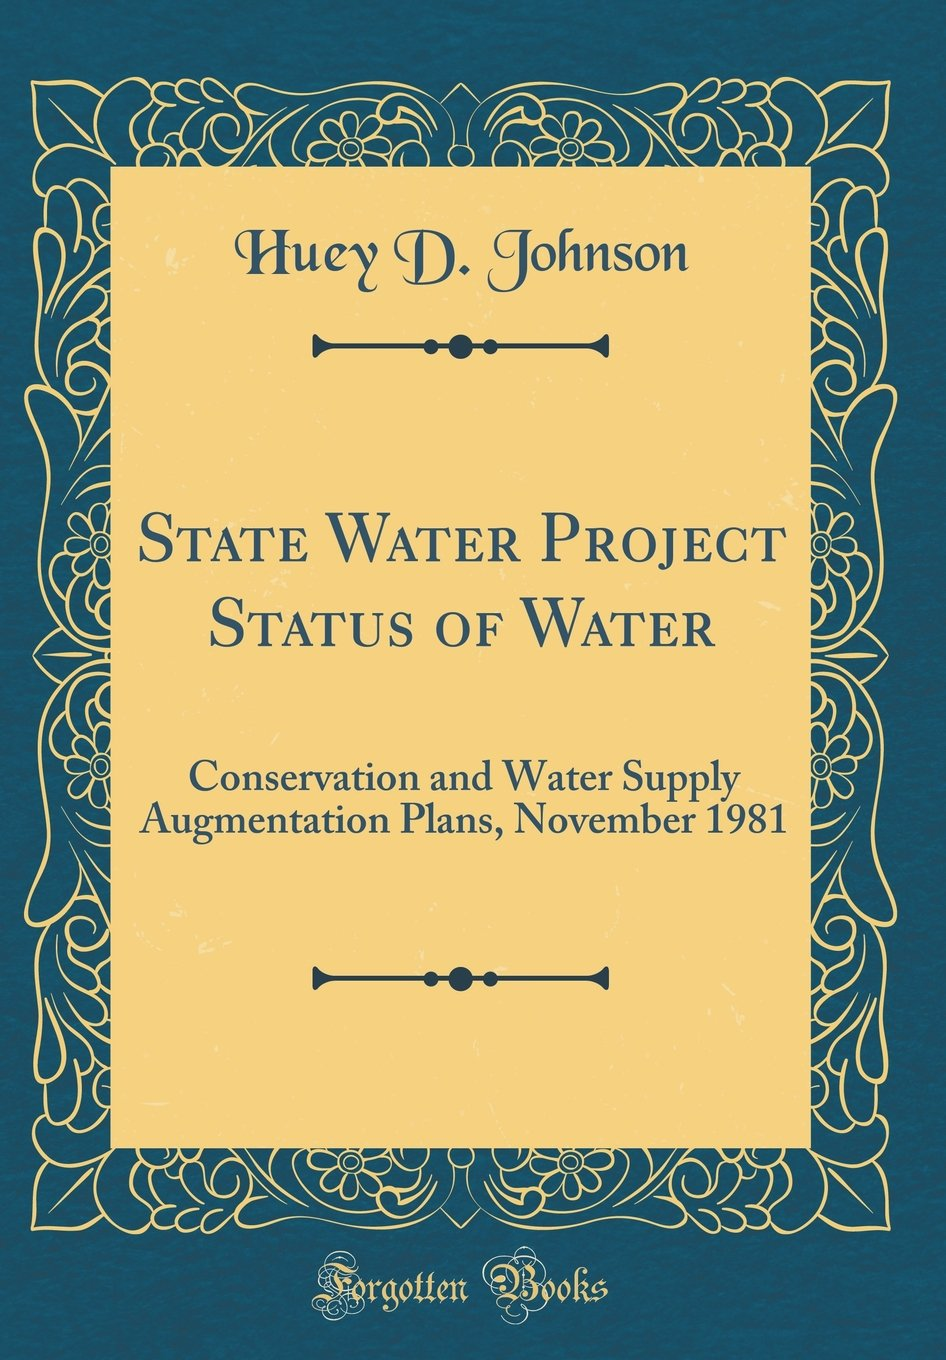 State Water Project Status of Water: Conservation and Water Supply Augmentation Plans, November 1981 (Classic Reprint) ePub fb2 book